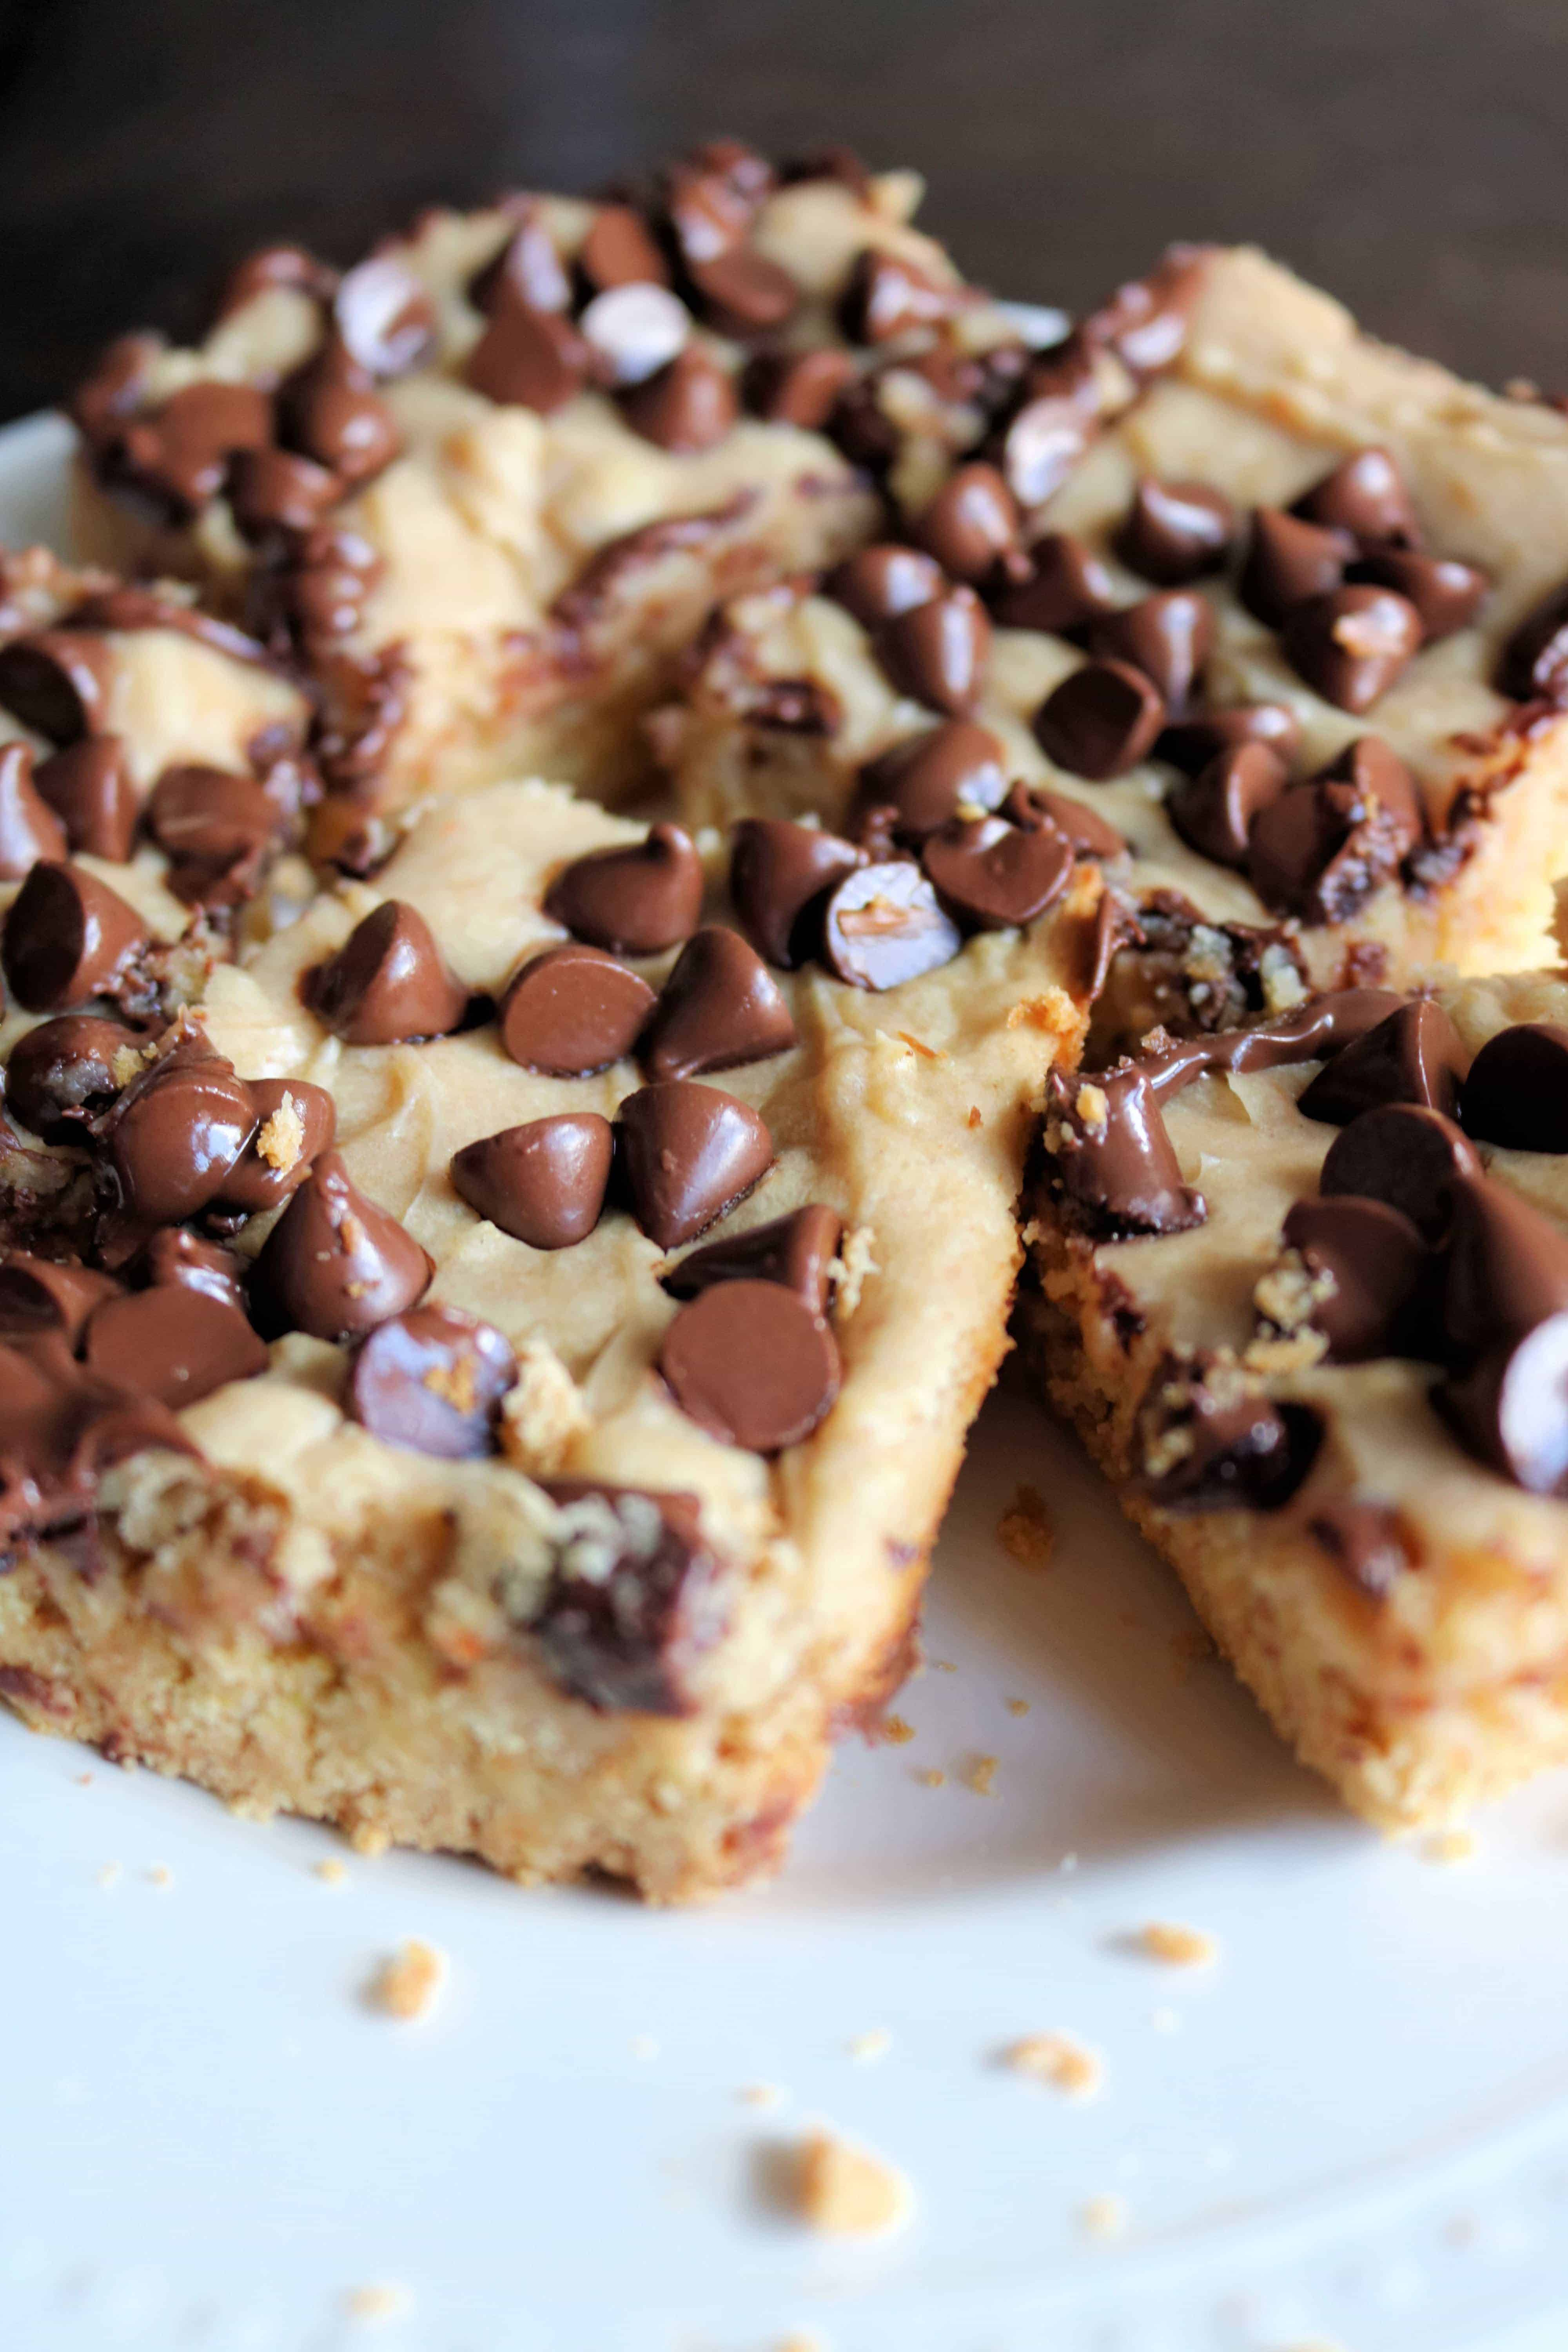 Craving a sweet treat for your family? Try these soft and delicious peanut butter chocolate chip bars! These peanut butter bars are made in a 13x9 pan using a cake mix, creamy peanut butter, cream cheese, and topped with semi-sweet chocolate chips. Even better this easy dessert bakes in less than 30 minutes! #peanutbutterbars #peanutbutter #chocolatechip #cookiebars #blondies #desserts